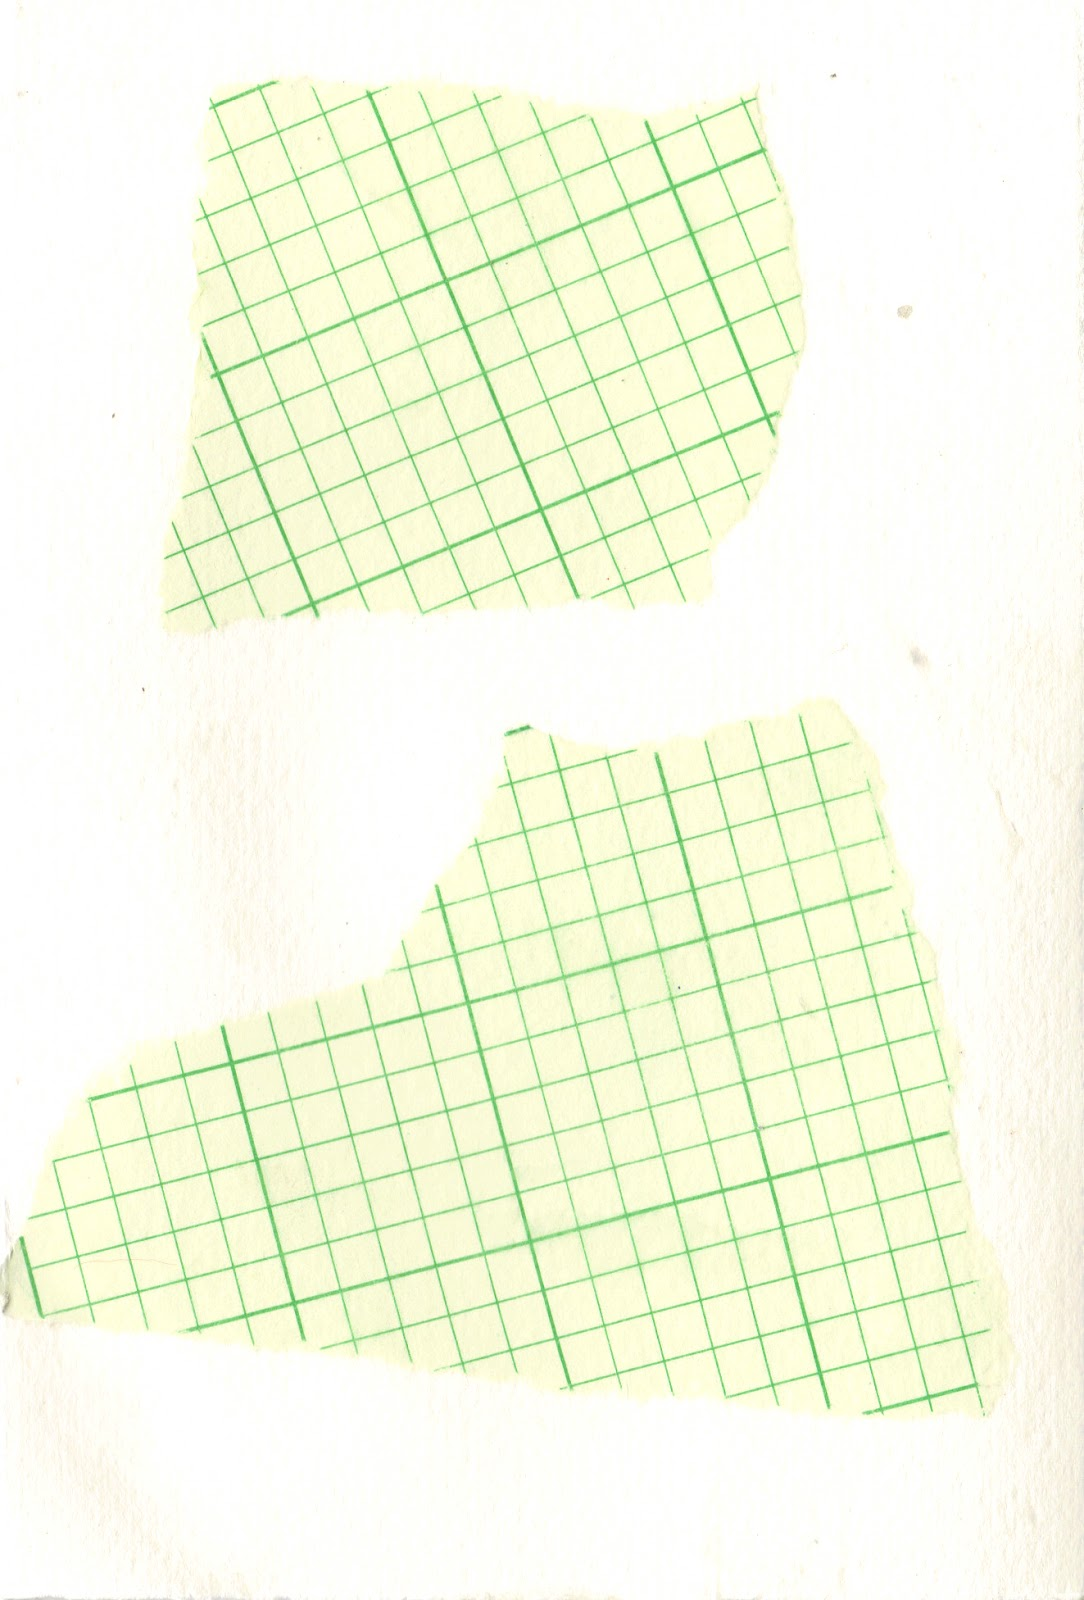 graphing paper 8x11